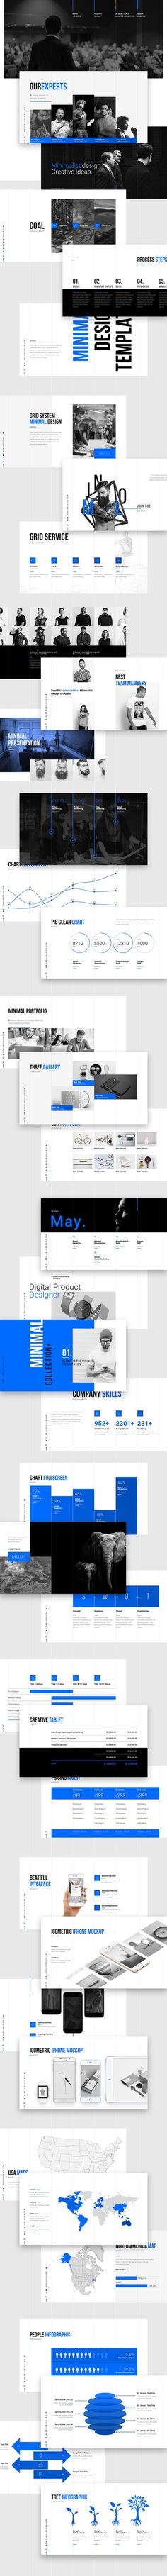 Grids_Minimal Presentation Template on Behance